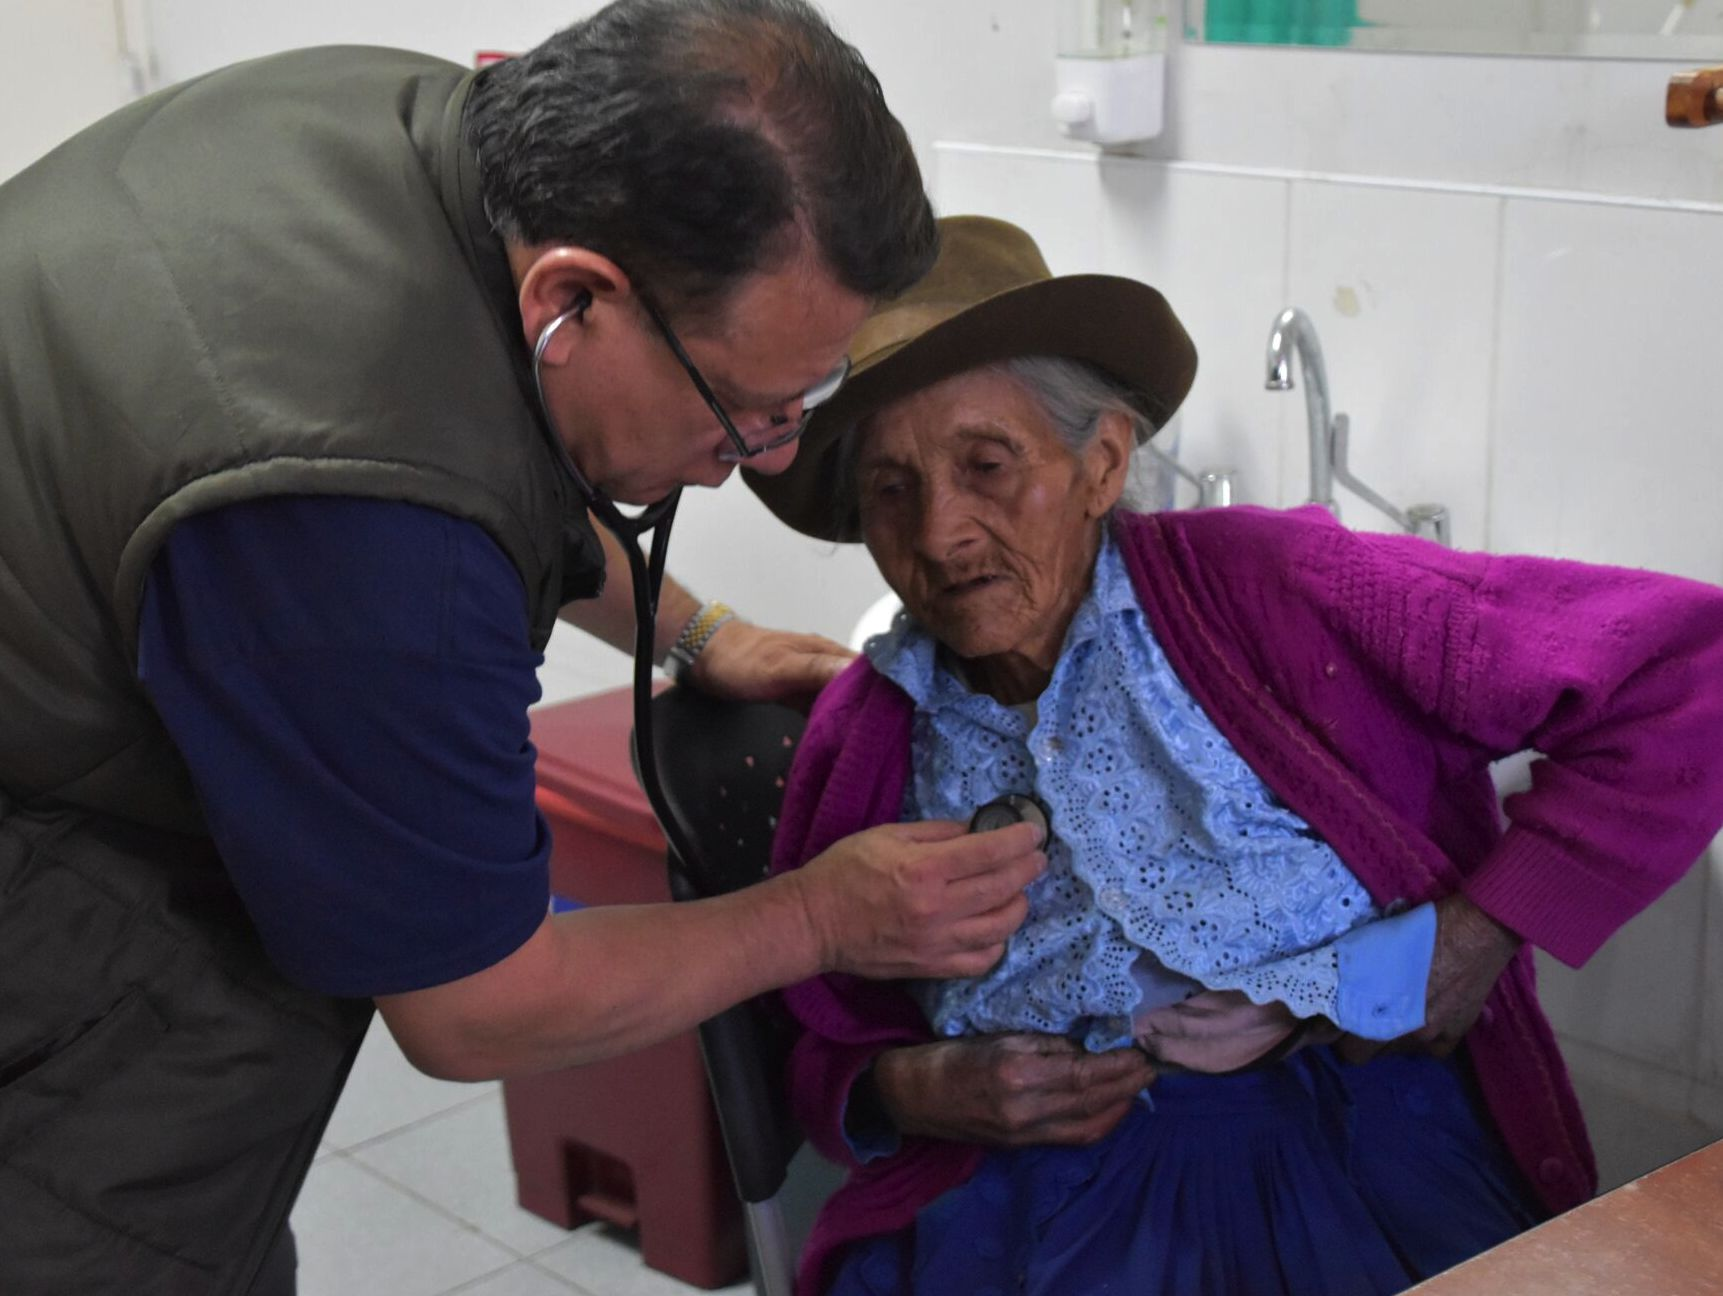 After discovering surprisingly high prevalence of type 2 diabetes through a several year screening program, the Ayacucho Mission now supports a collaborative, year-round diabetes program run by a local registered nurse with support of Ayacucho physicians. The Mission provides medications, testing supplies and provider education to support the program which serves dozens of diabetes patients throughout the entire year.